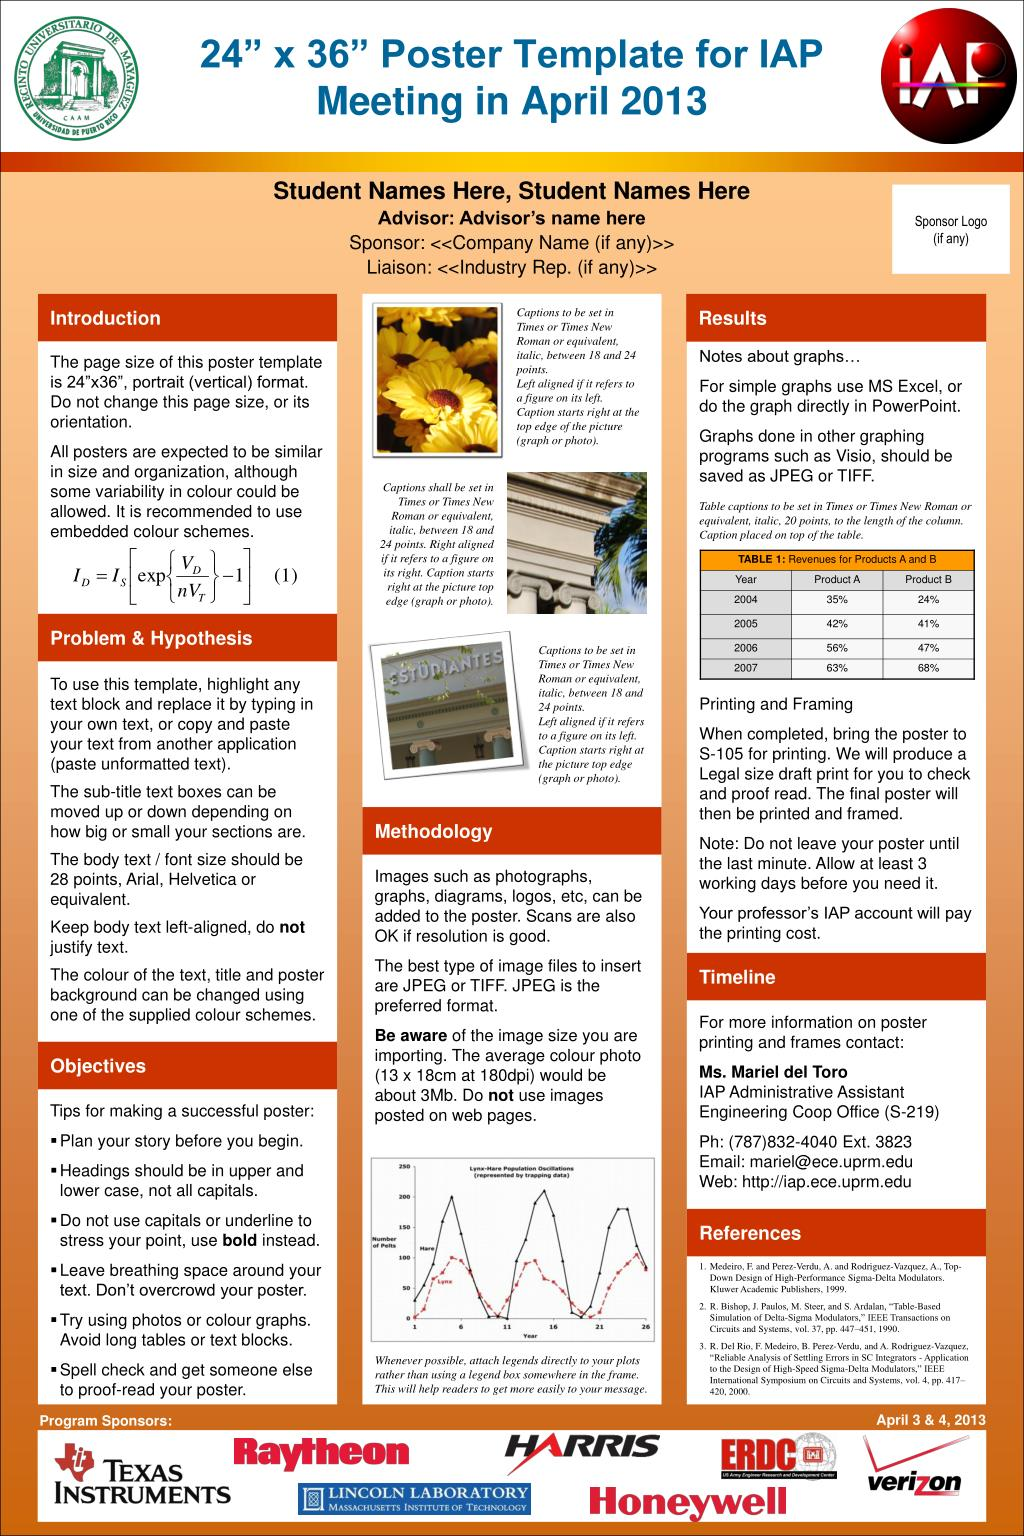 Ppt 24 X 36 Poster Template For Iap Meeting In April 2013